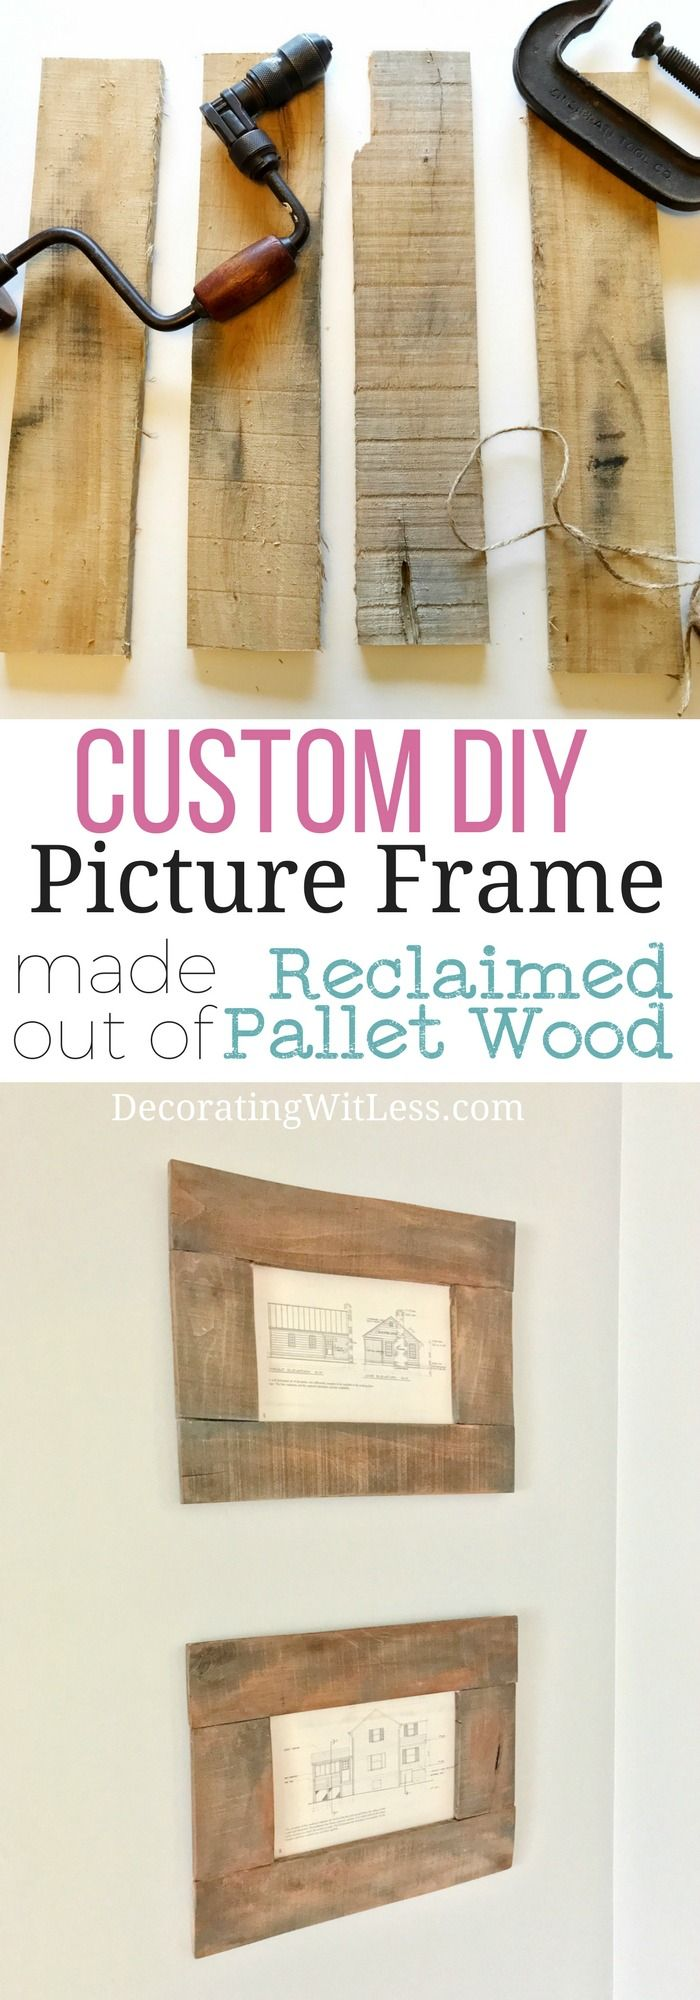 Custom DIY Picture Frame made out of Reclaimed Pallet Wood Idea - Learn how to make your own frames for all your wall art - Decorating With Less